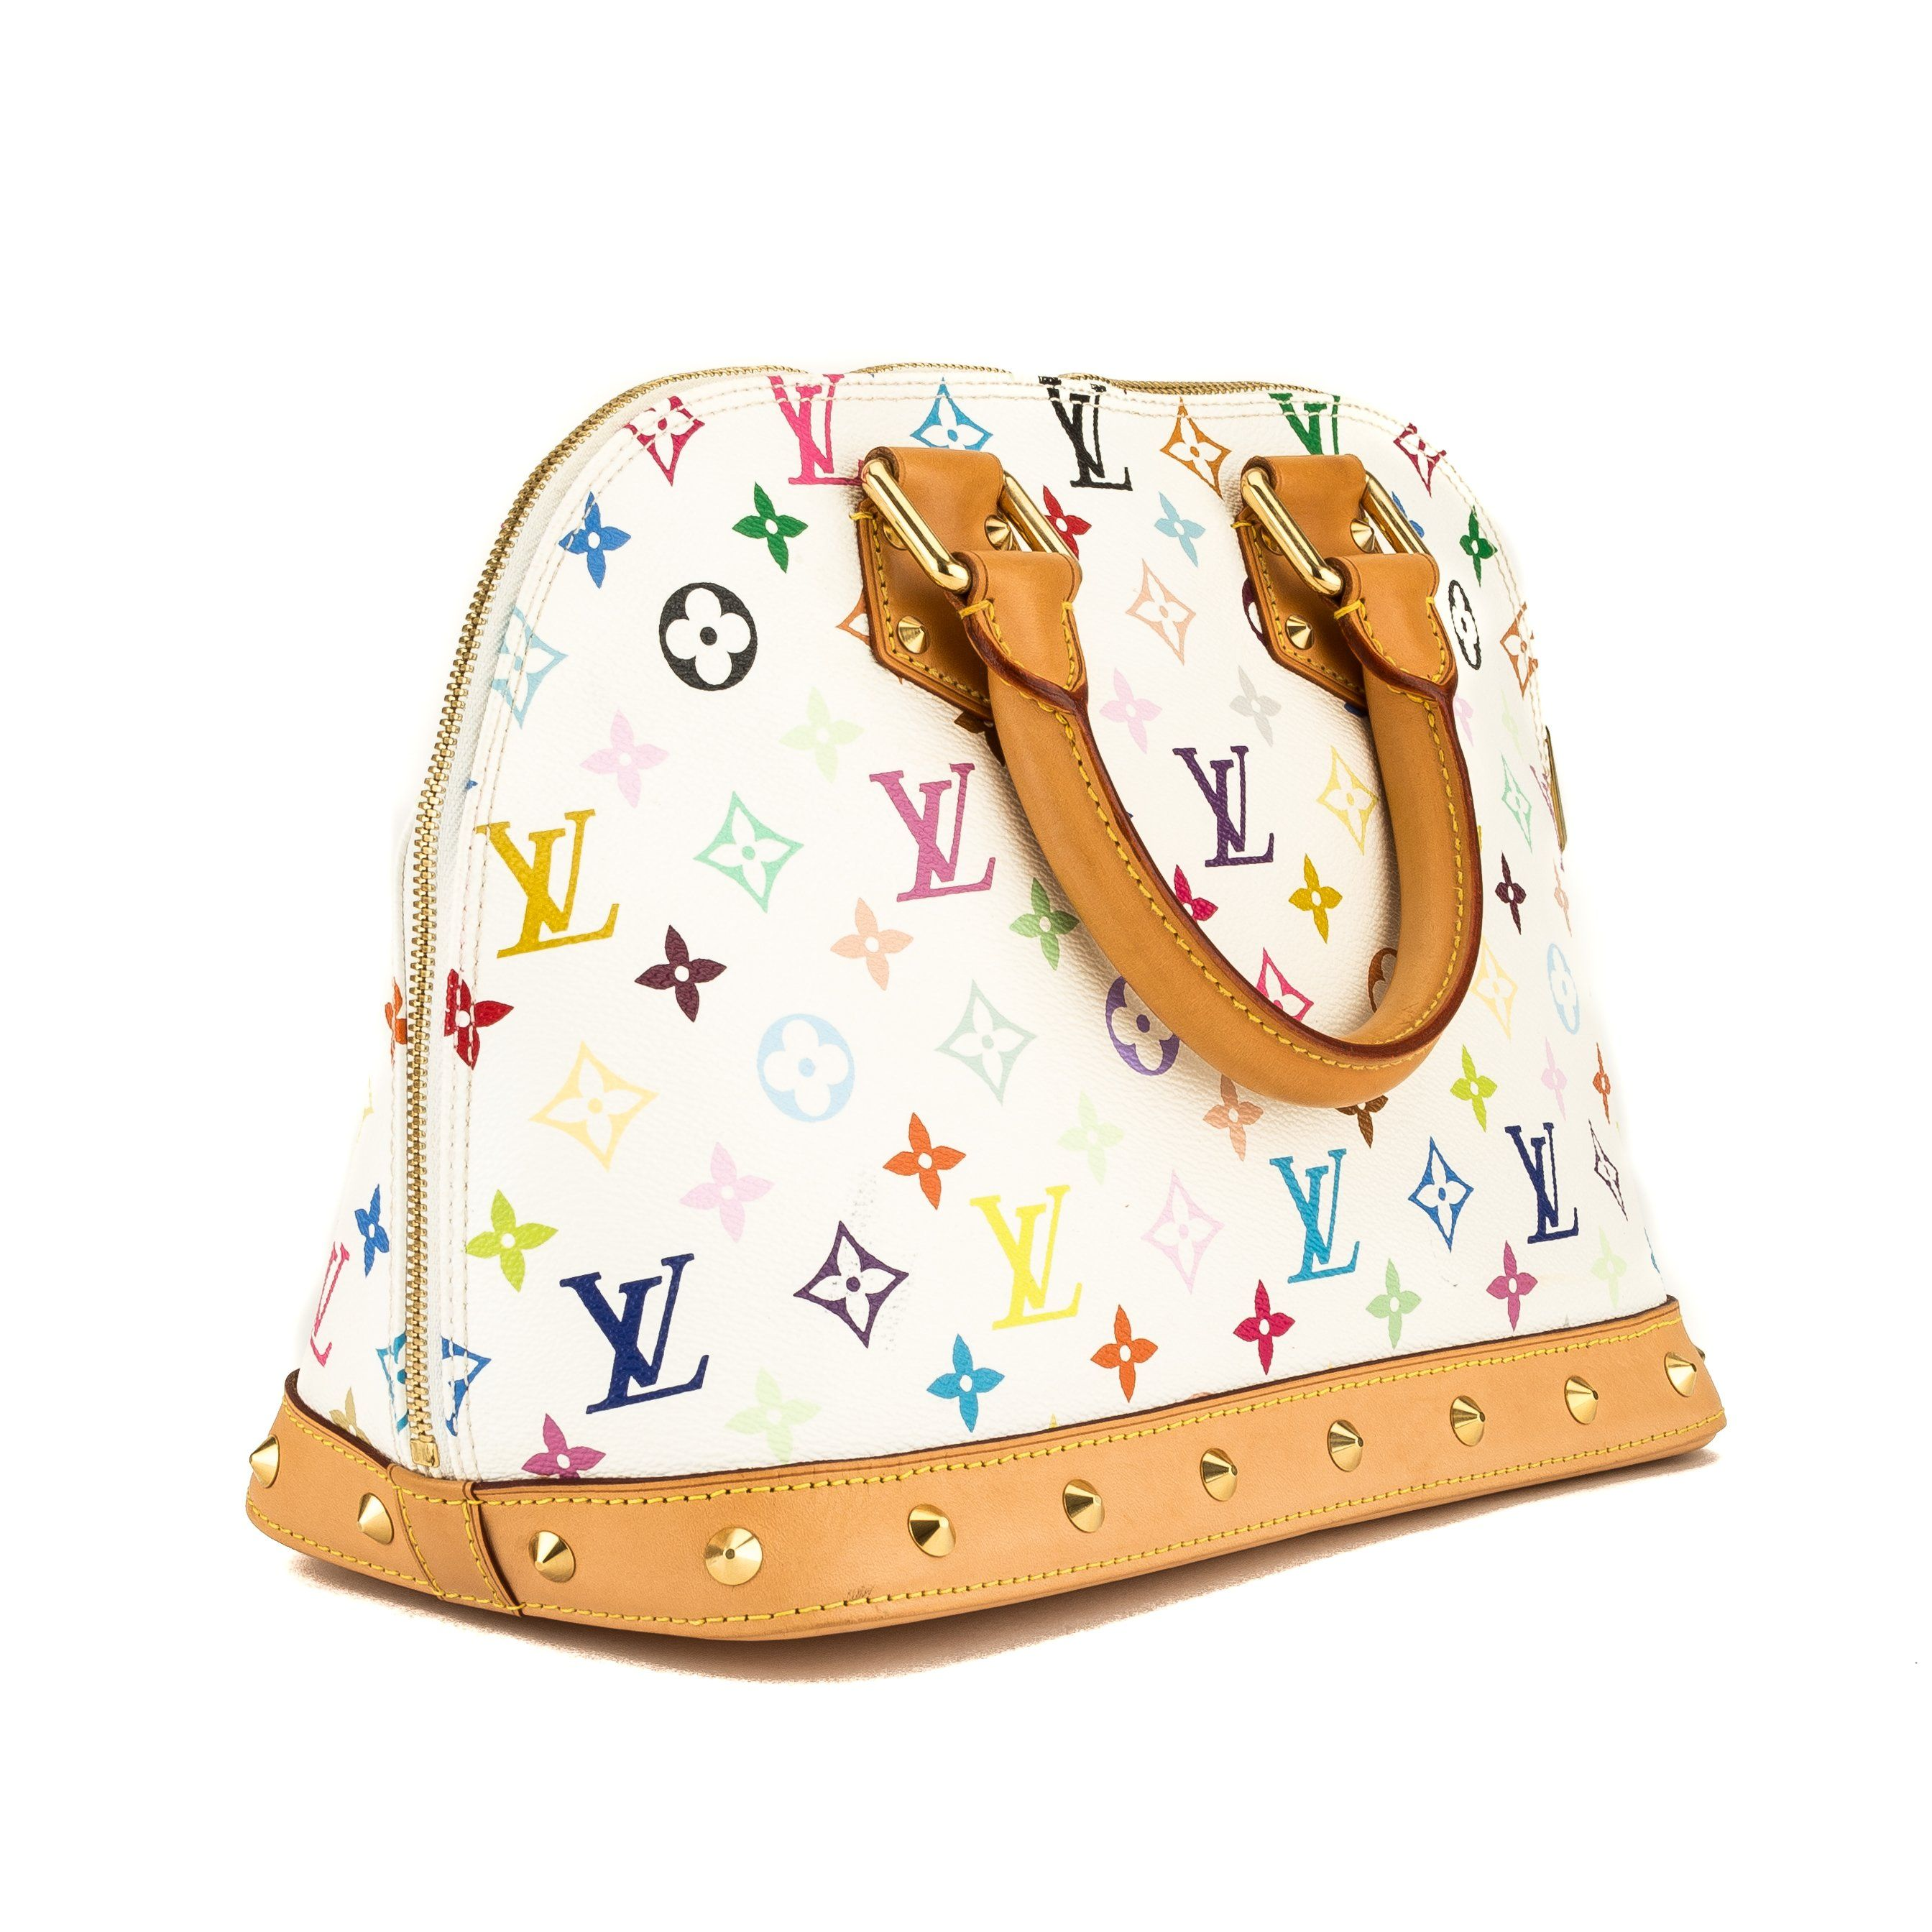 82c79b2926b5 Louis Vuitton White Monogram Multicolore Alma (3964036) - 3964036